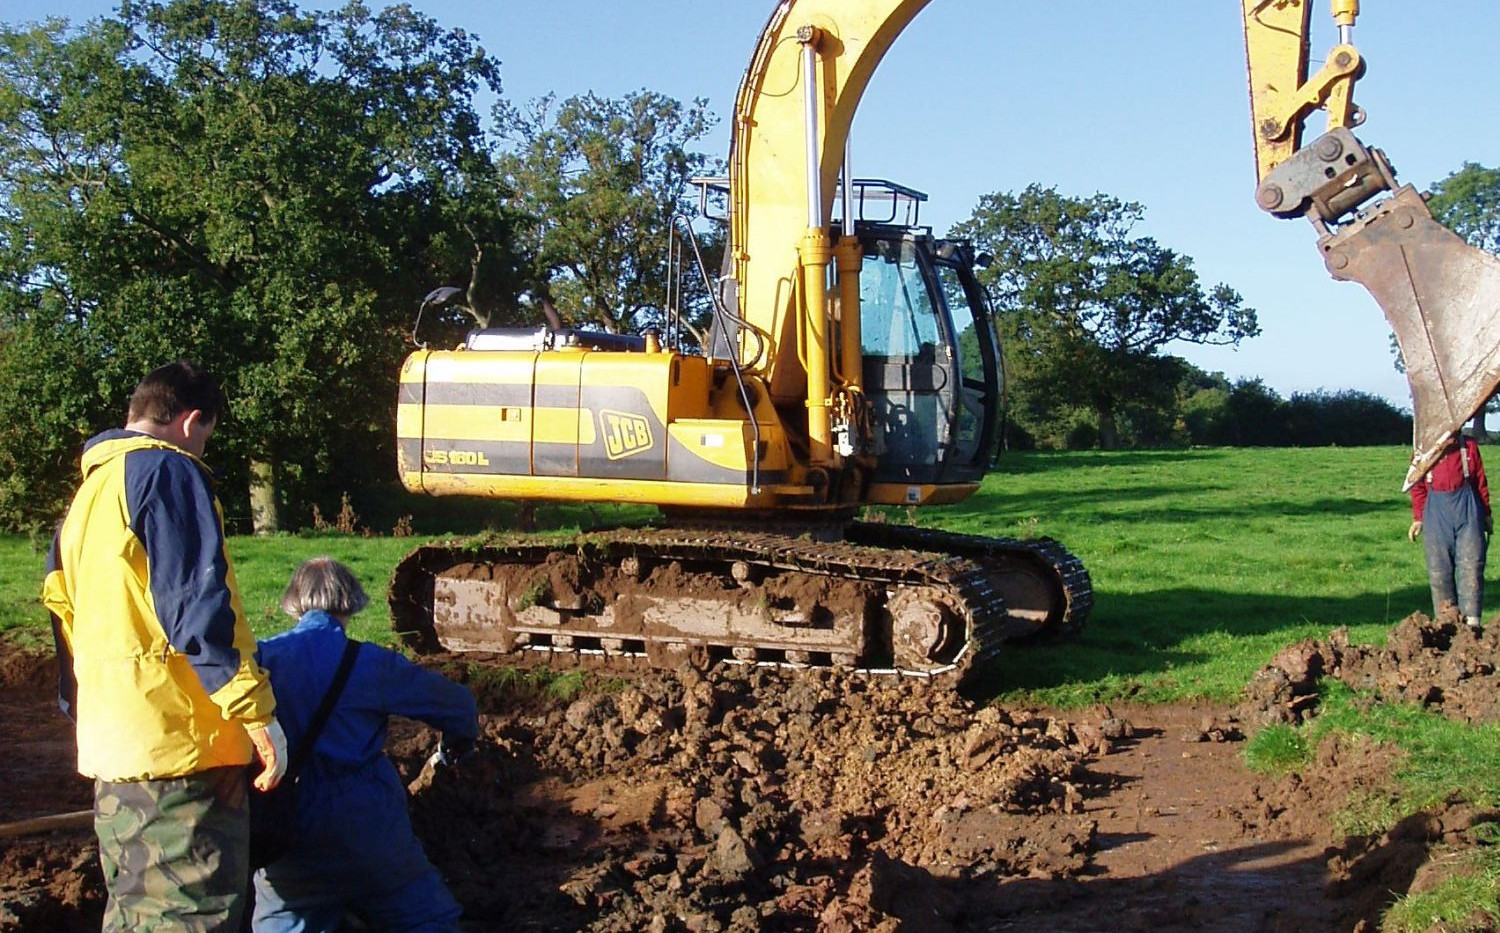 A very large excavator strips the turf